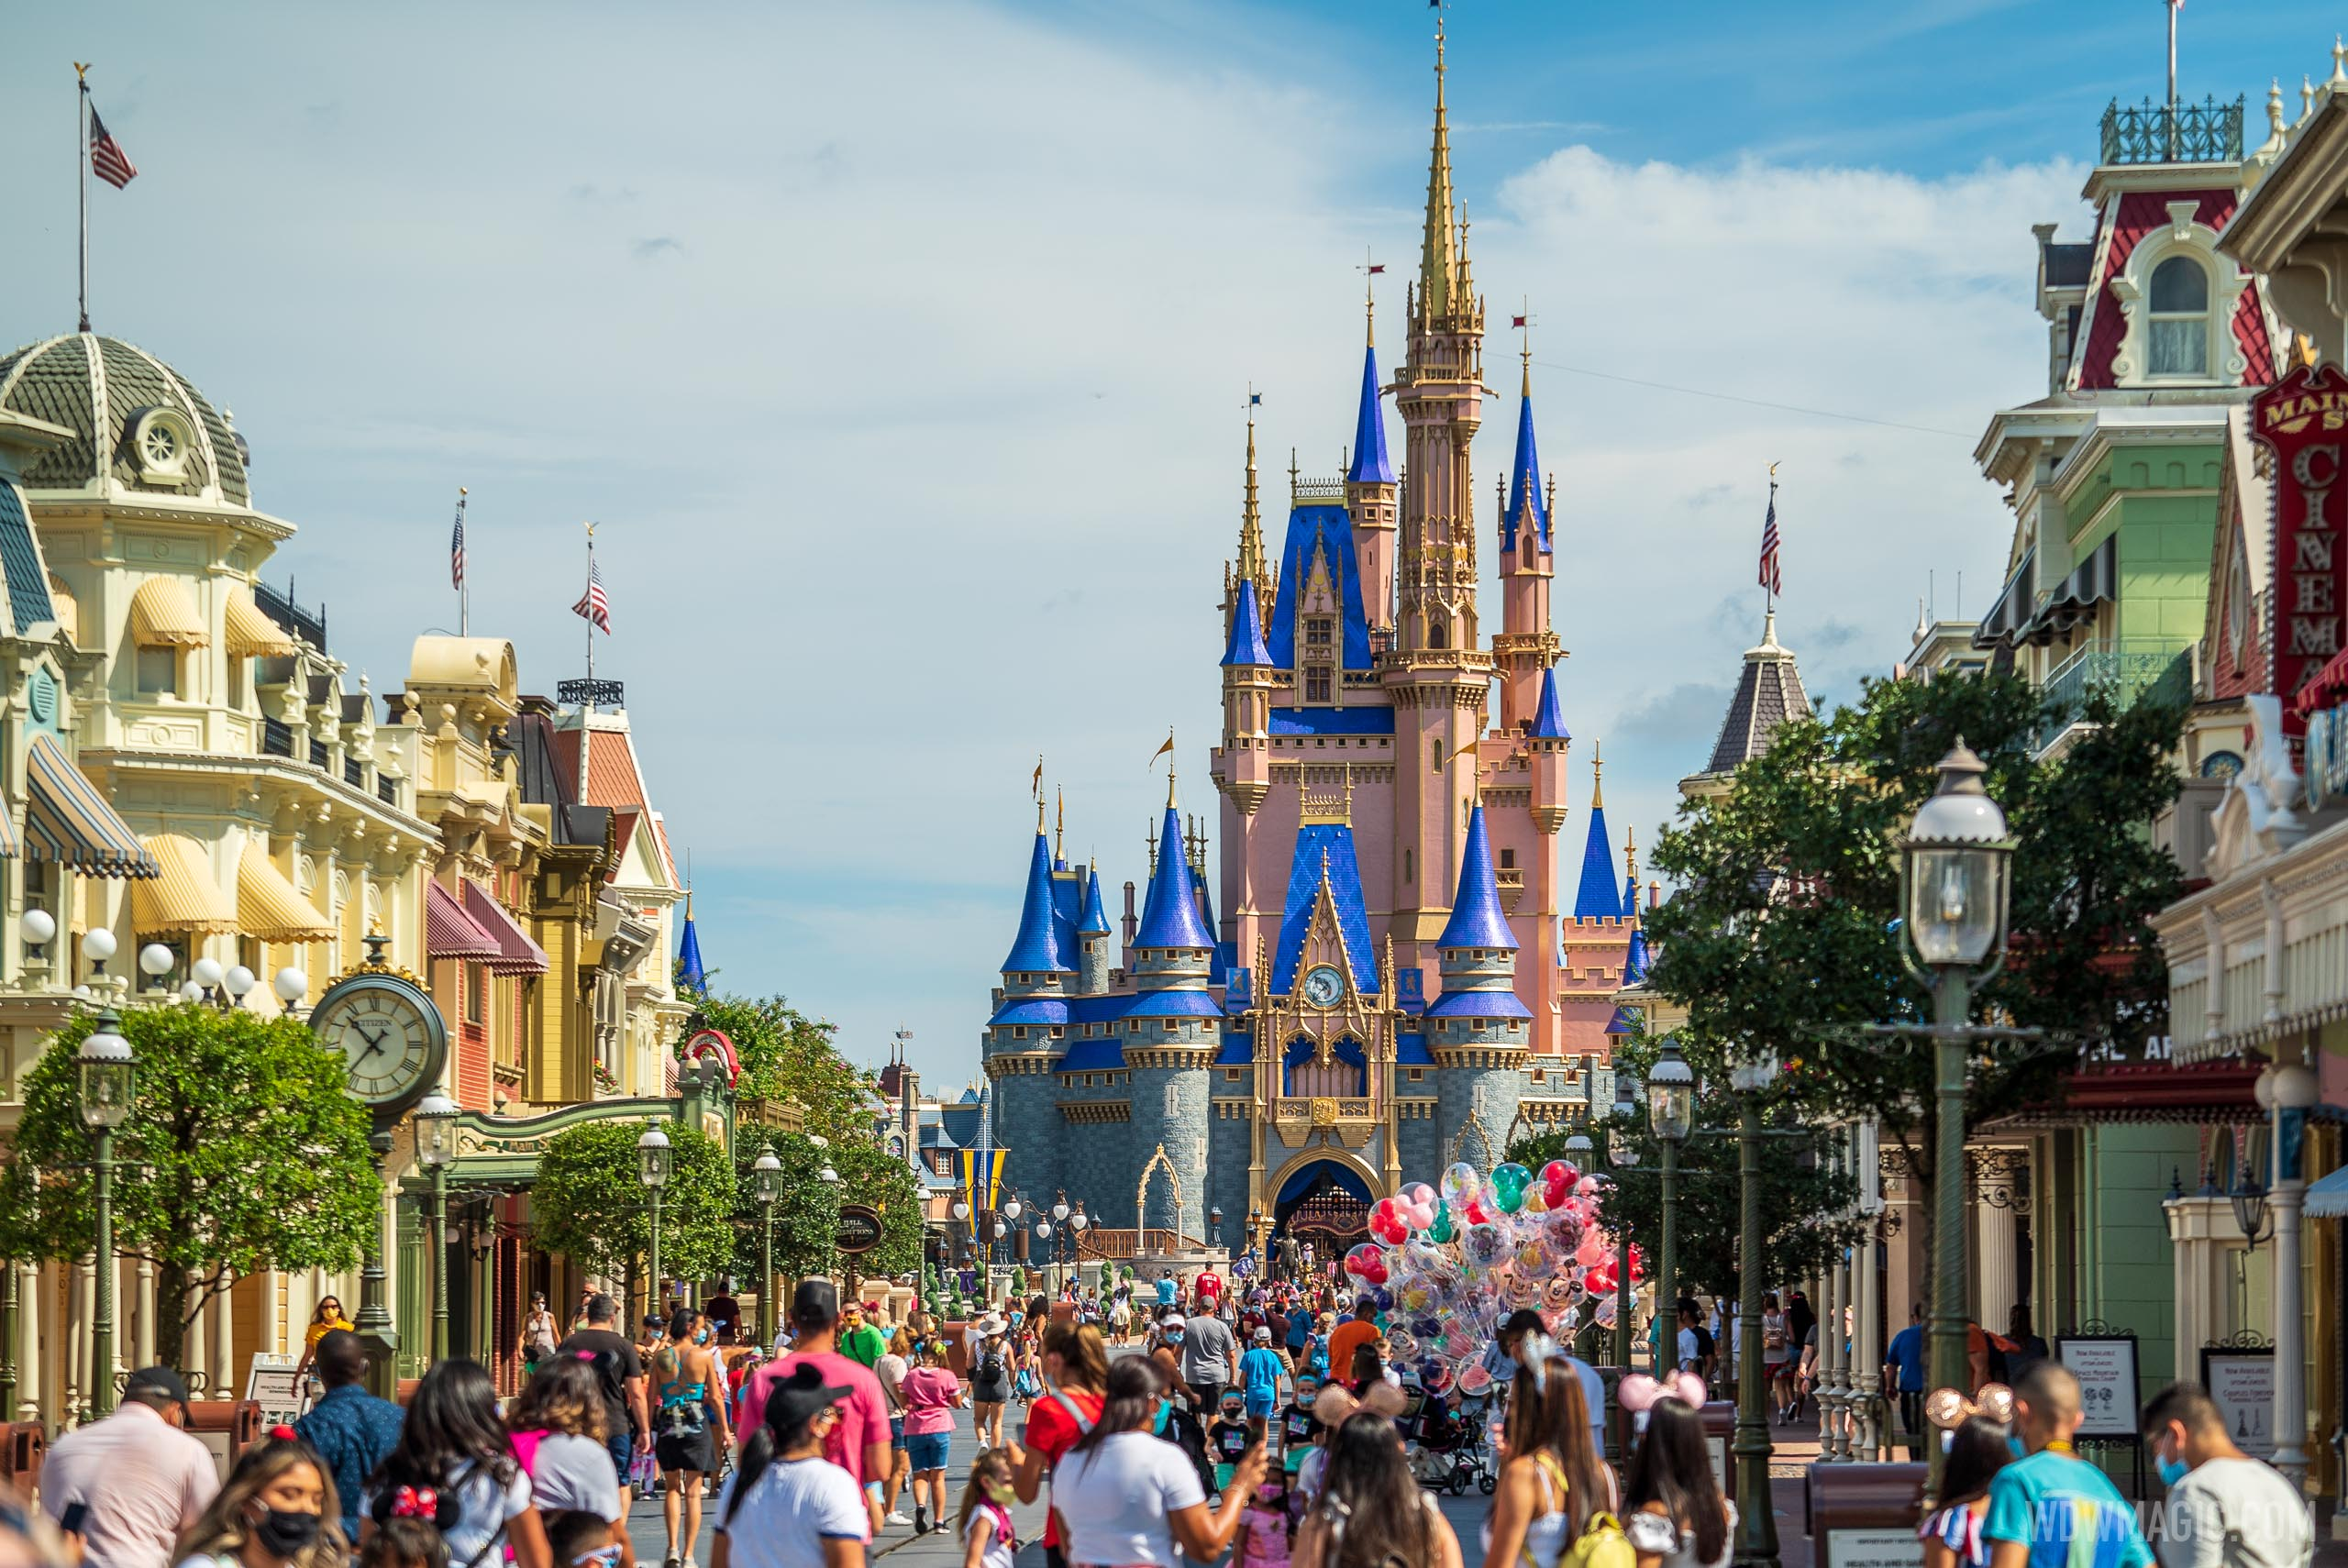 Guests are returning to Walt Disney World in greater numbers, but restrictions may be coming